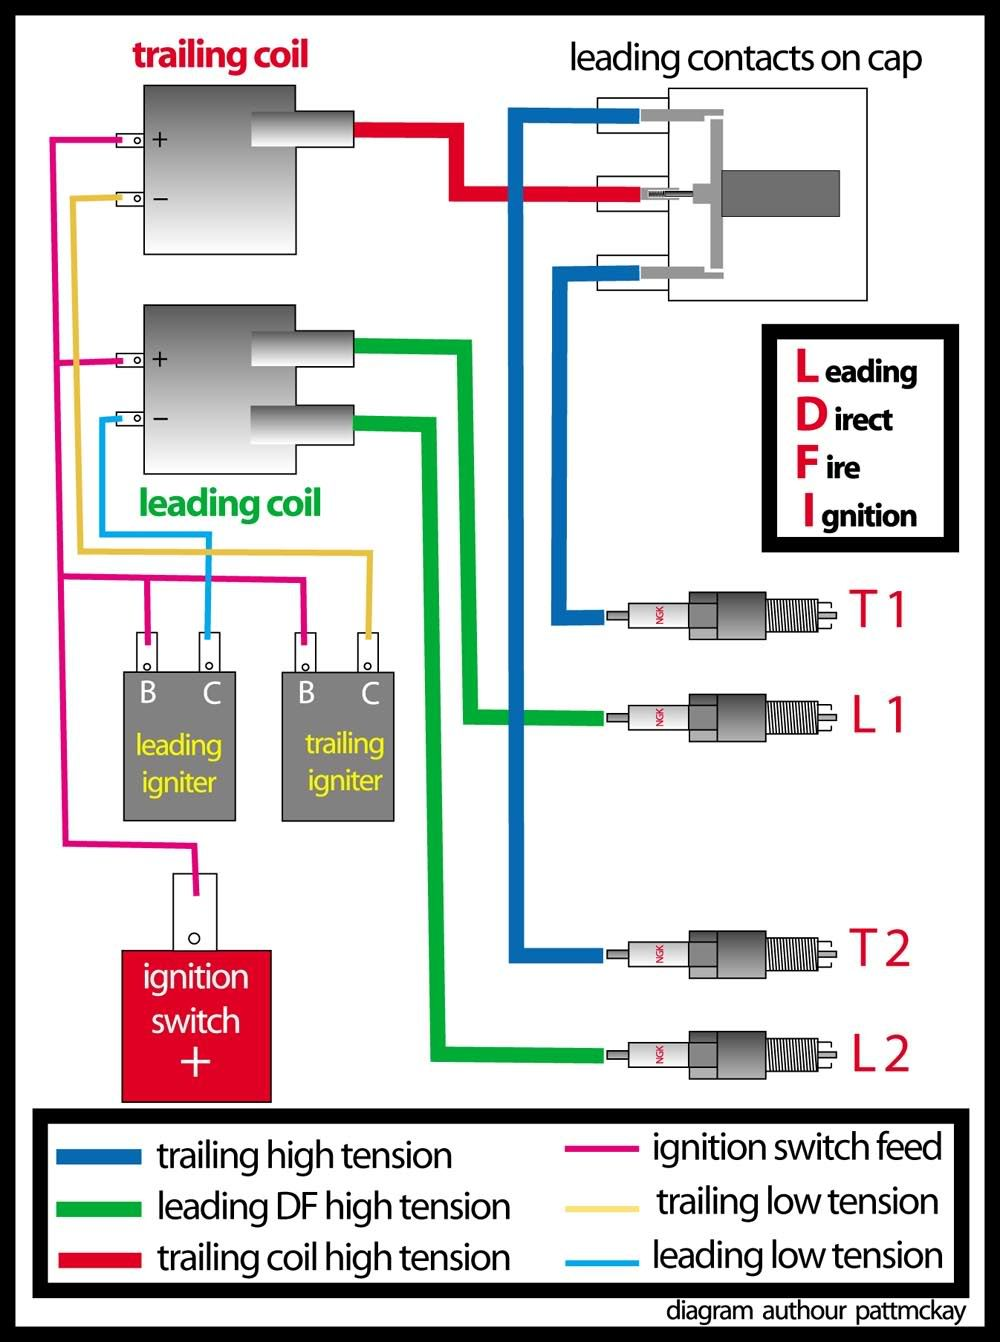 f51a9f8accfbb2accd16cb3edbec5003 here is a simple wiring diagram for a single leading direct fire rx7 spark plug wire diagram at crackthecode.co